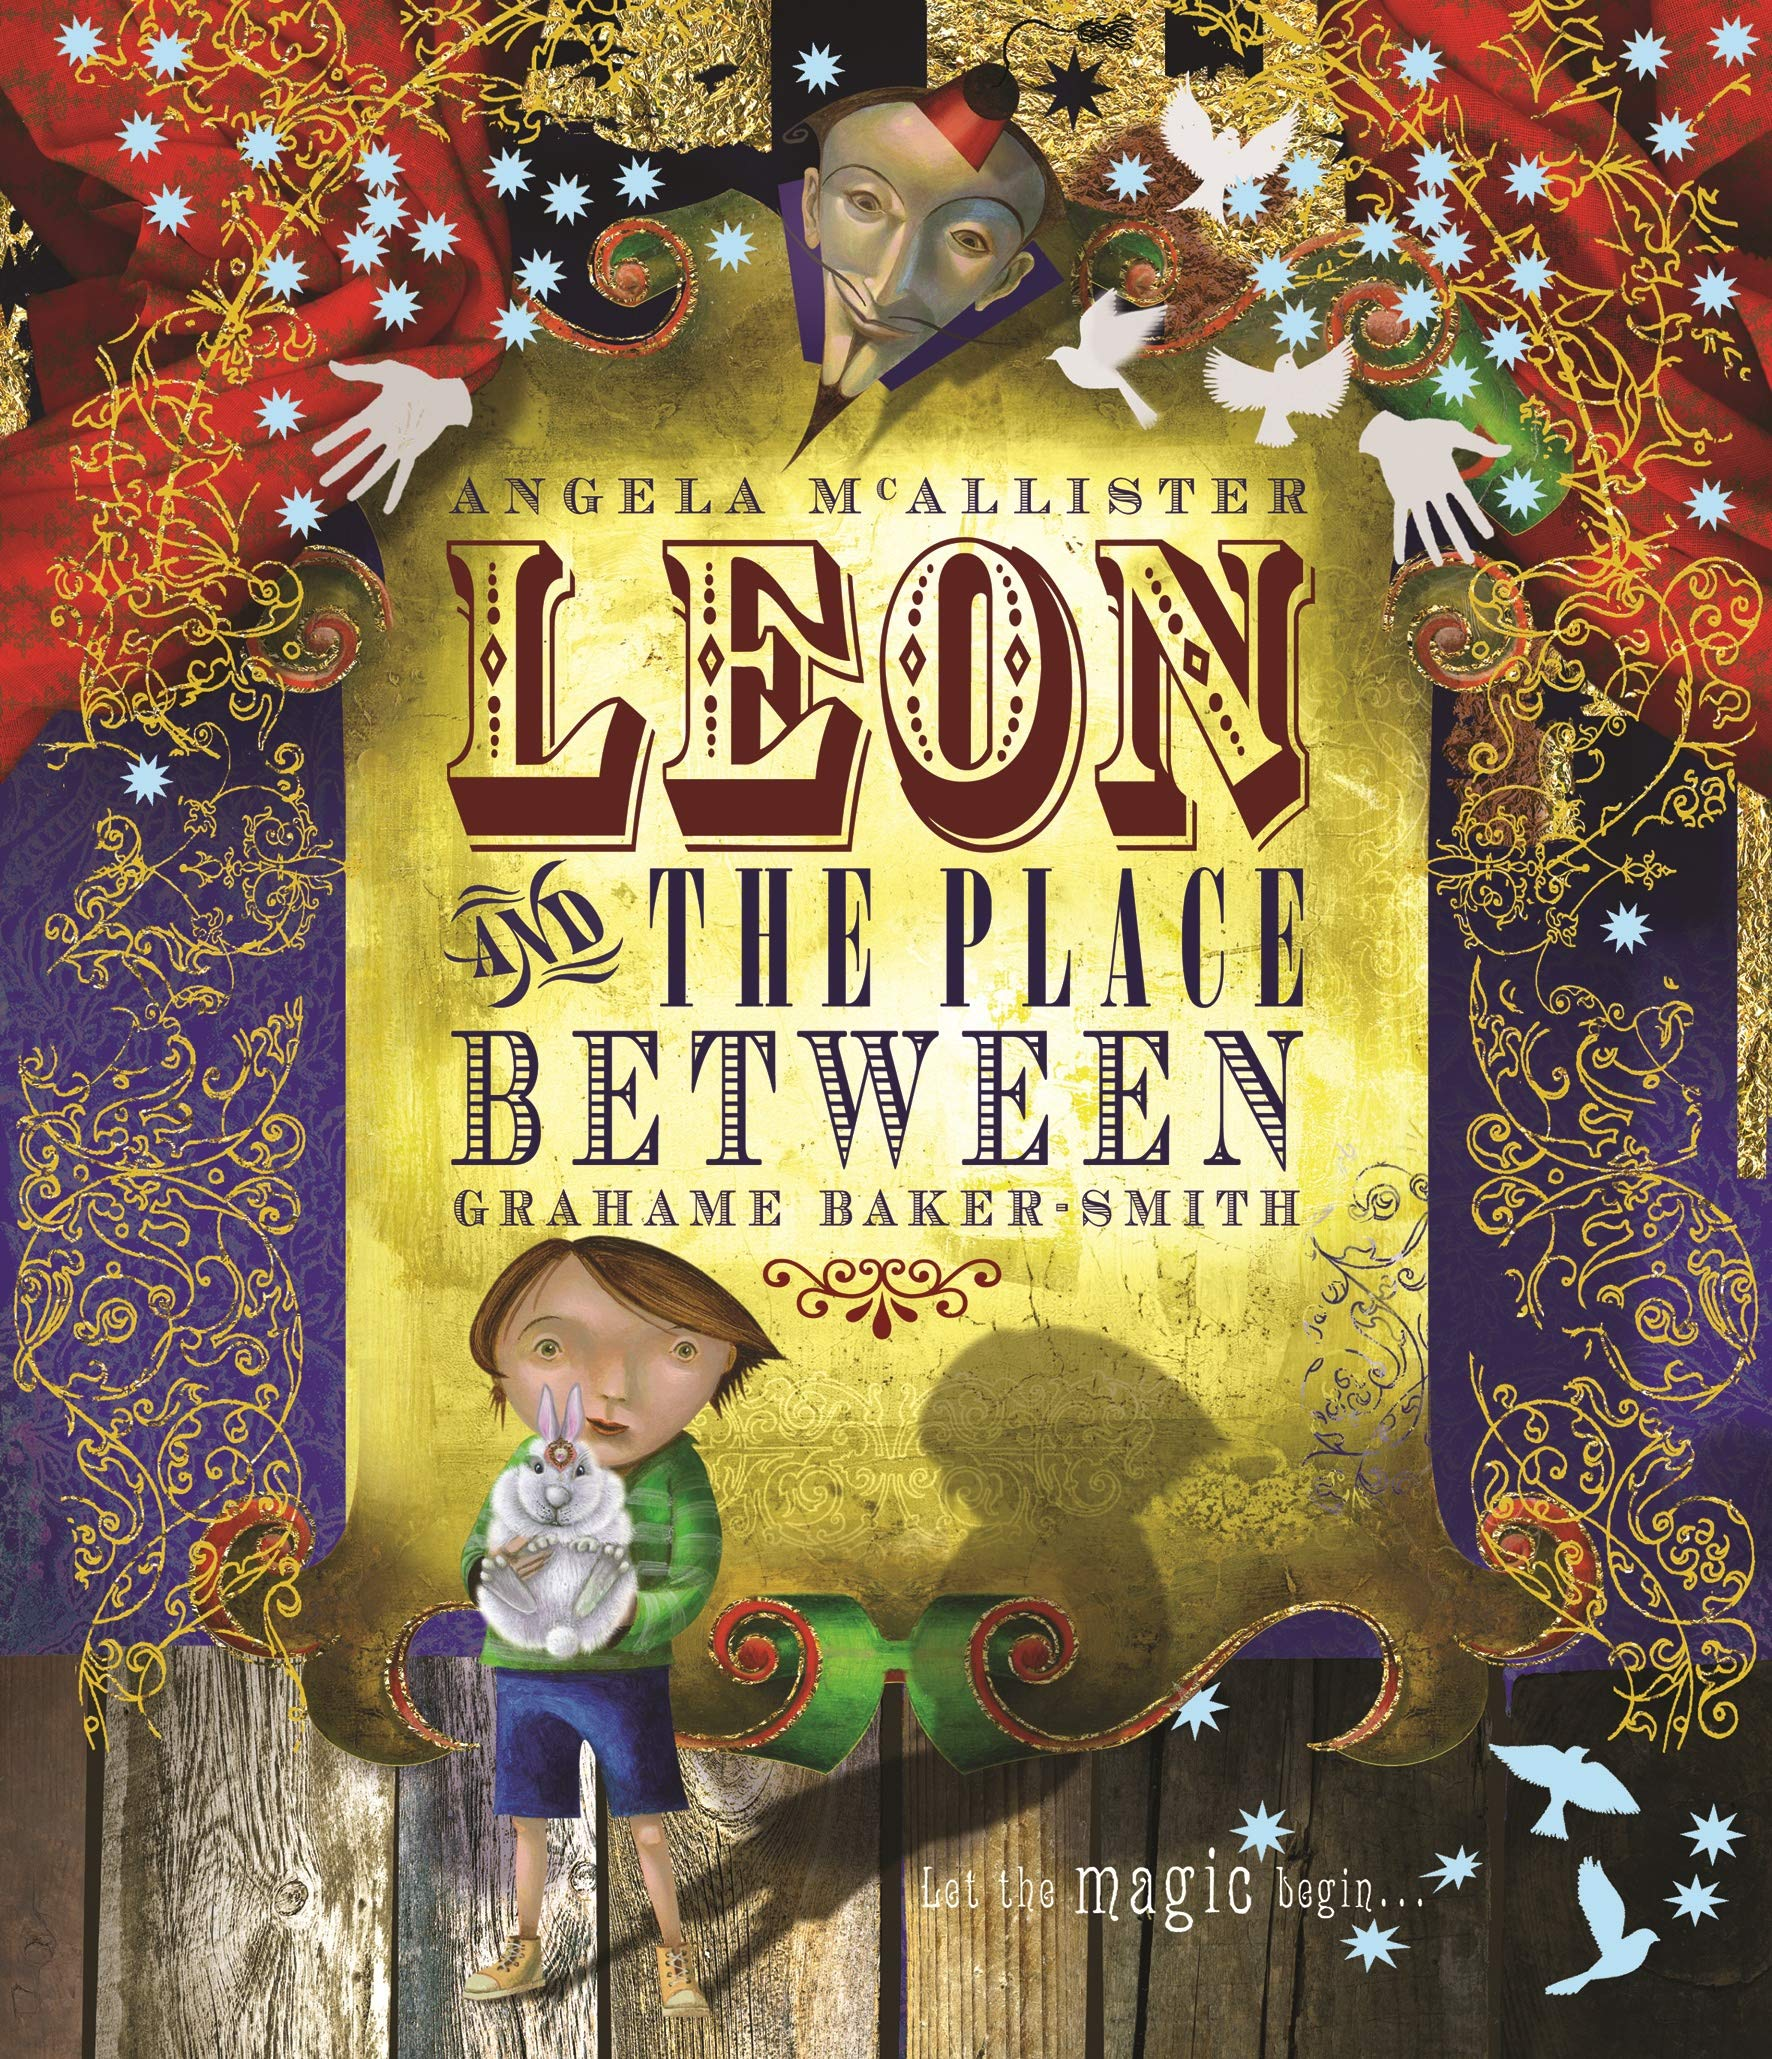 Leon and the Place Between: Amazon.co.uk: Mcallister/Grahame Baker-Smith,  Angela, Baker-Smith, Grahame: Books